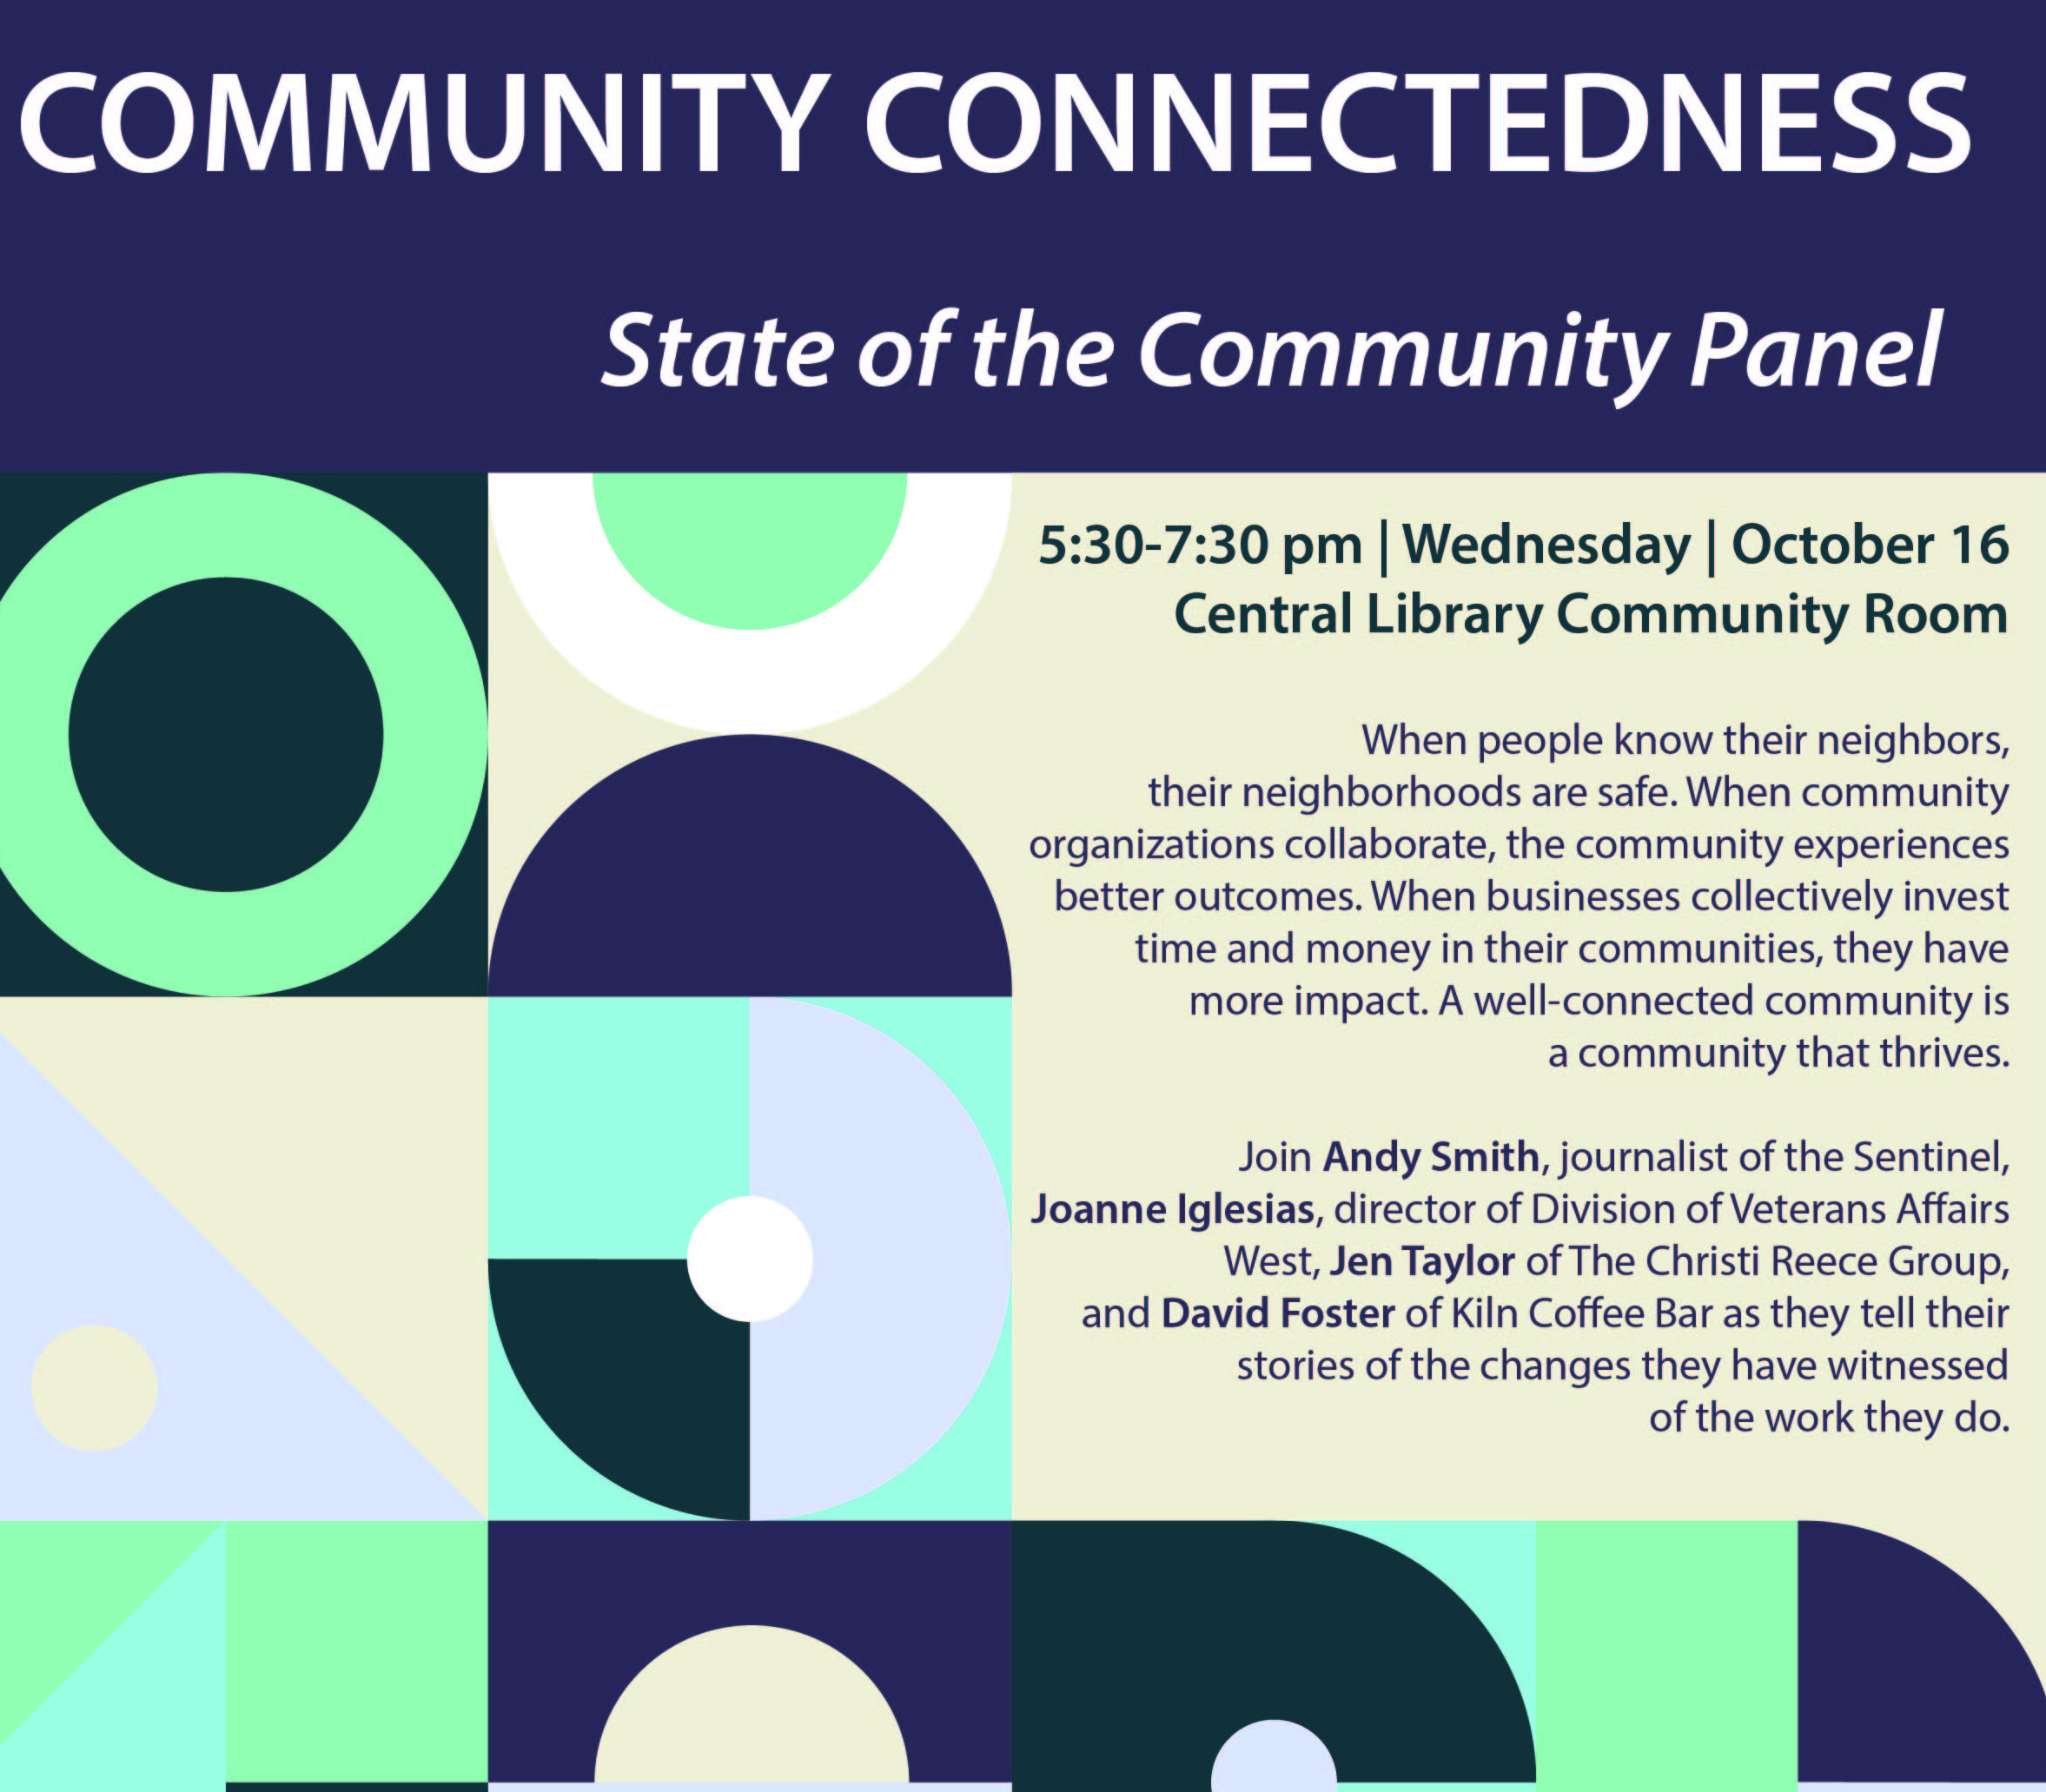 Detail from Community Connectedness flier